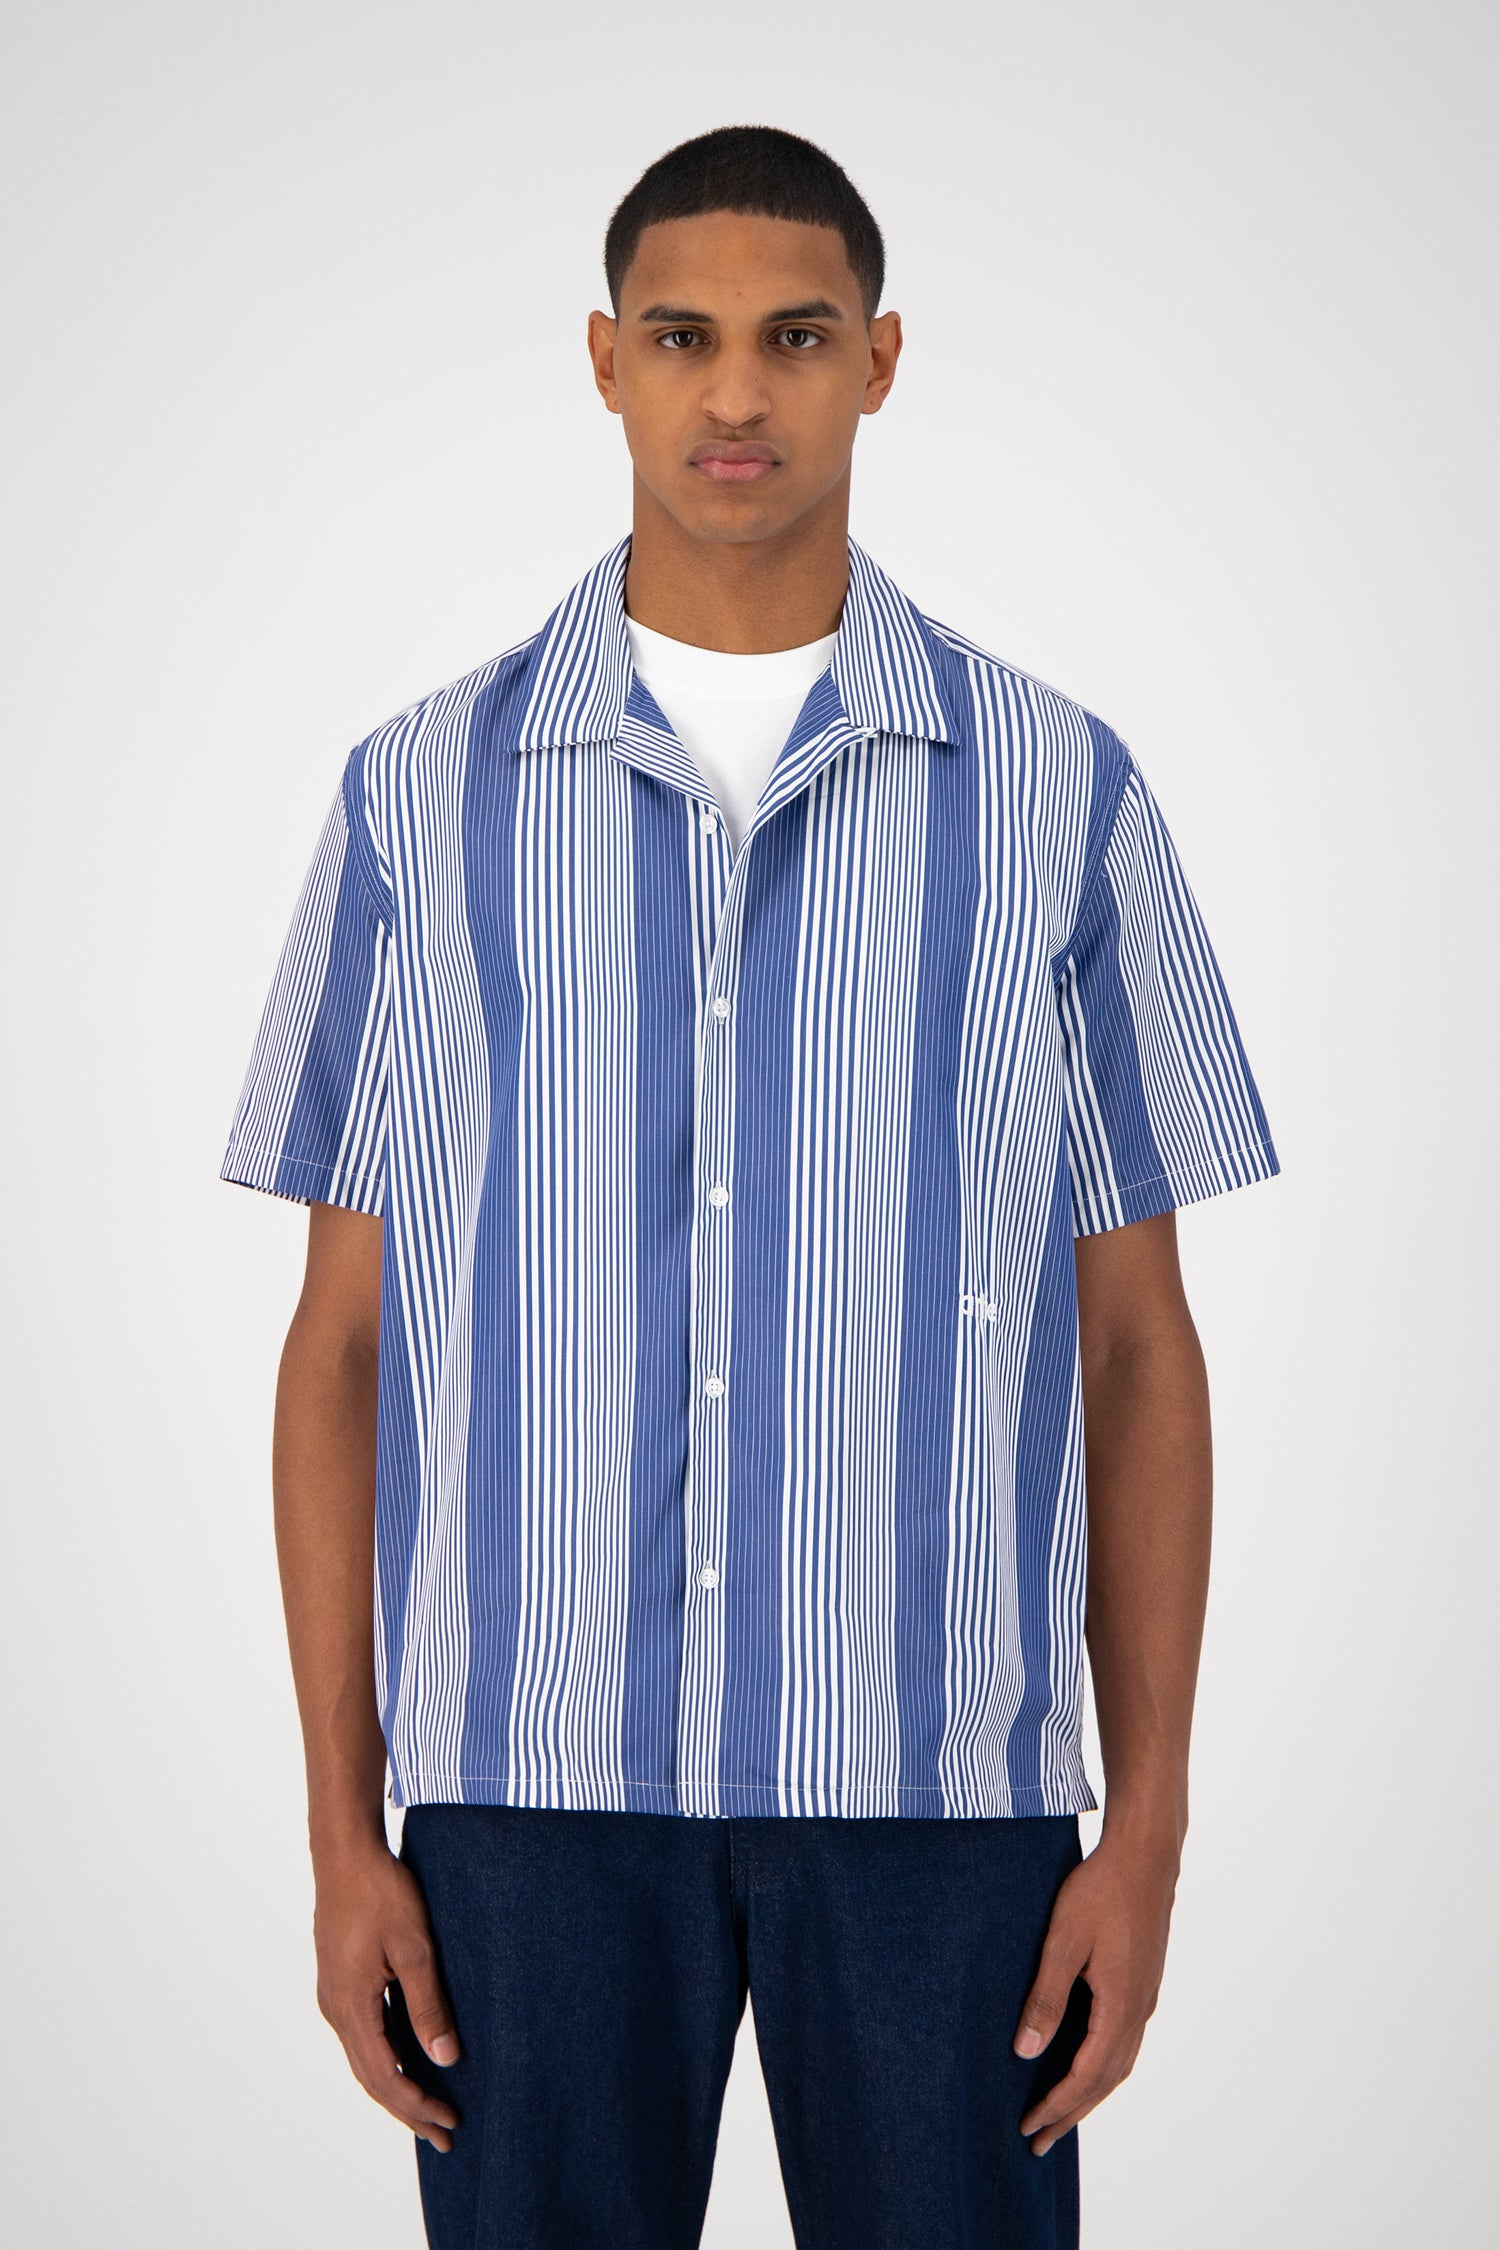 Steven Shortsleeve Shirt - Blue Striped